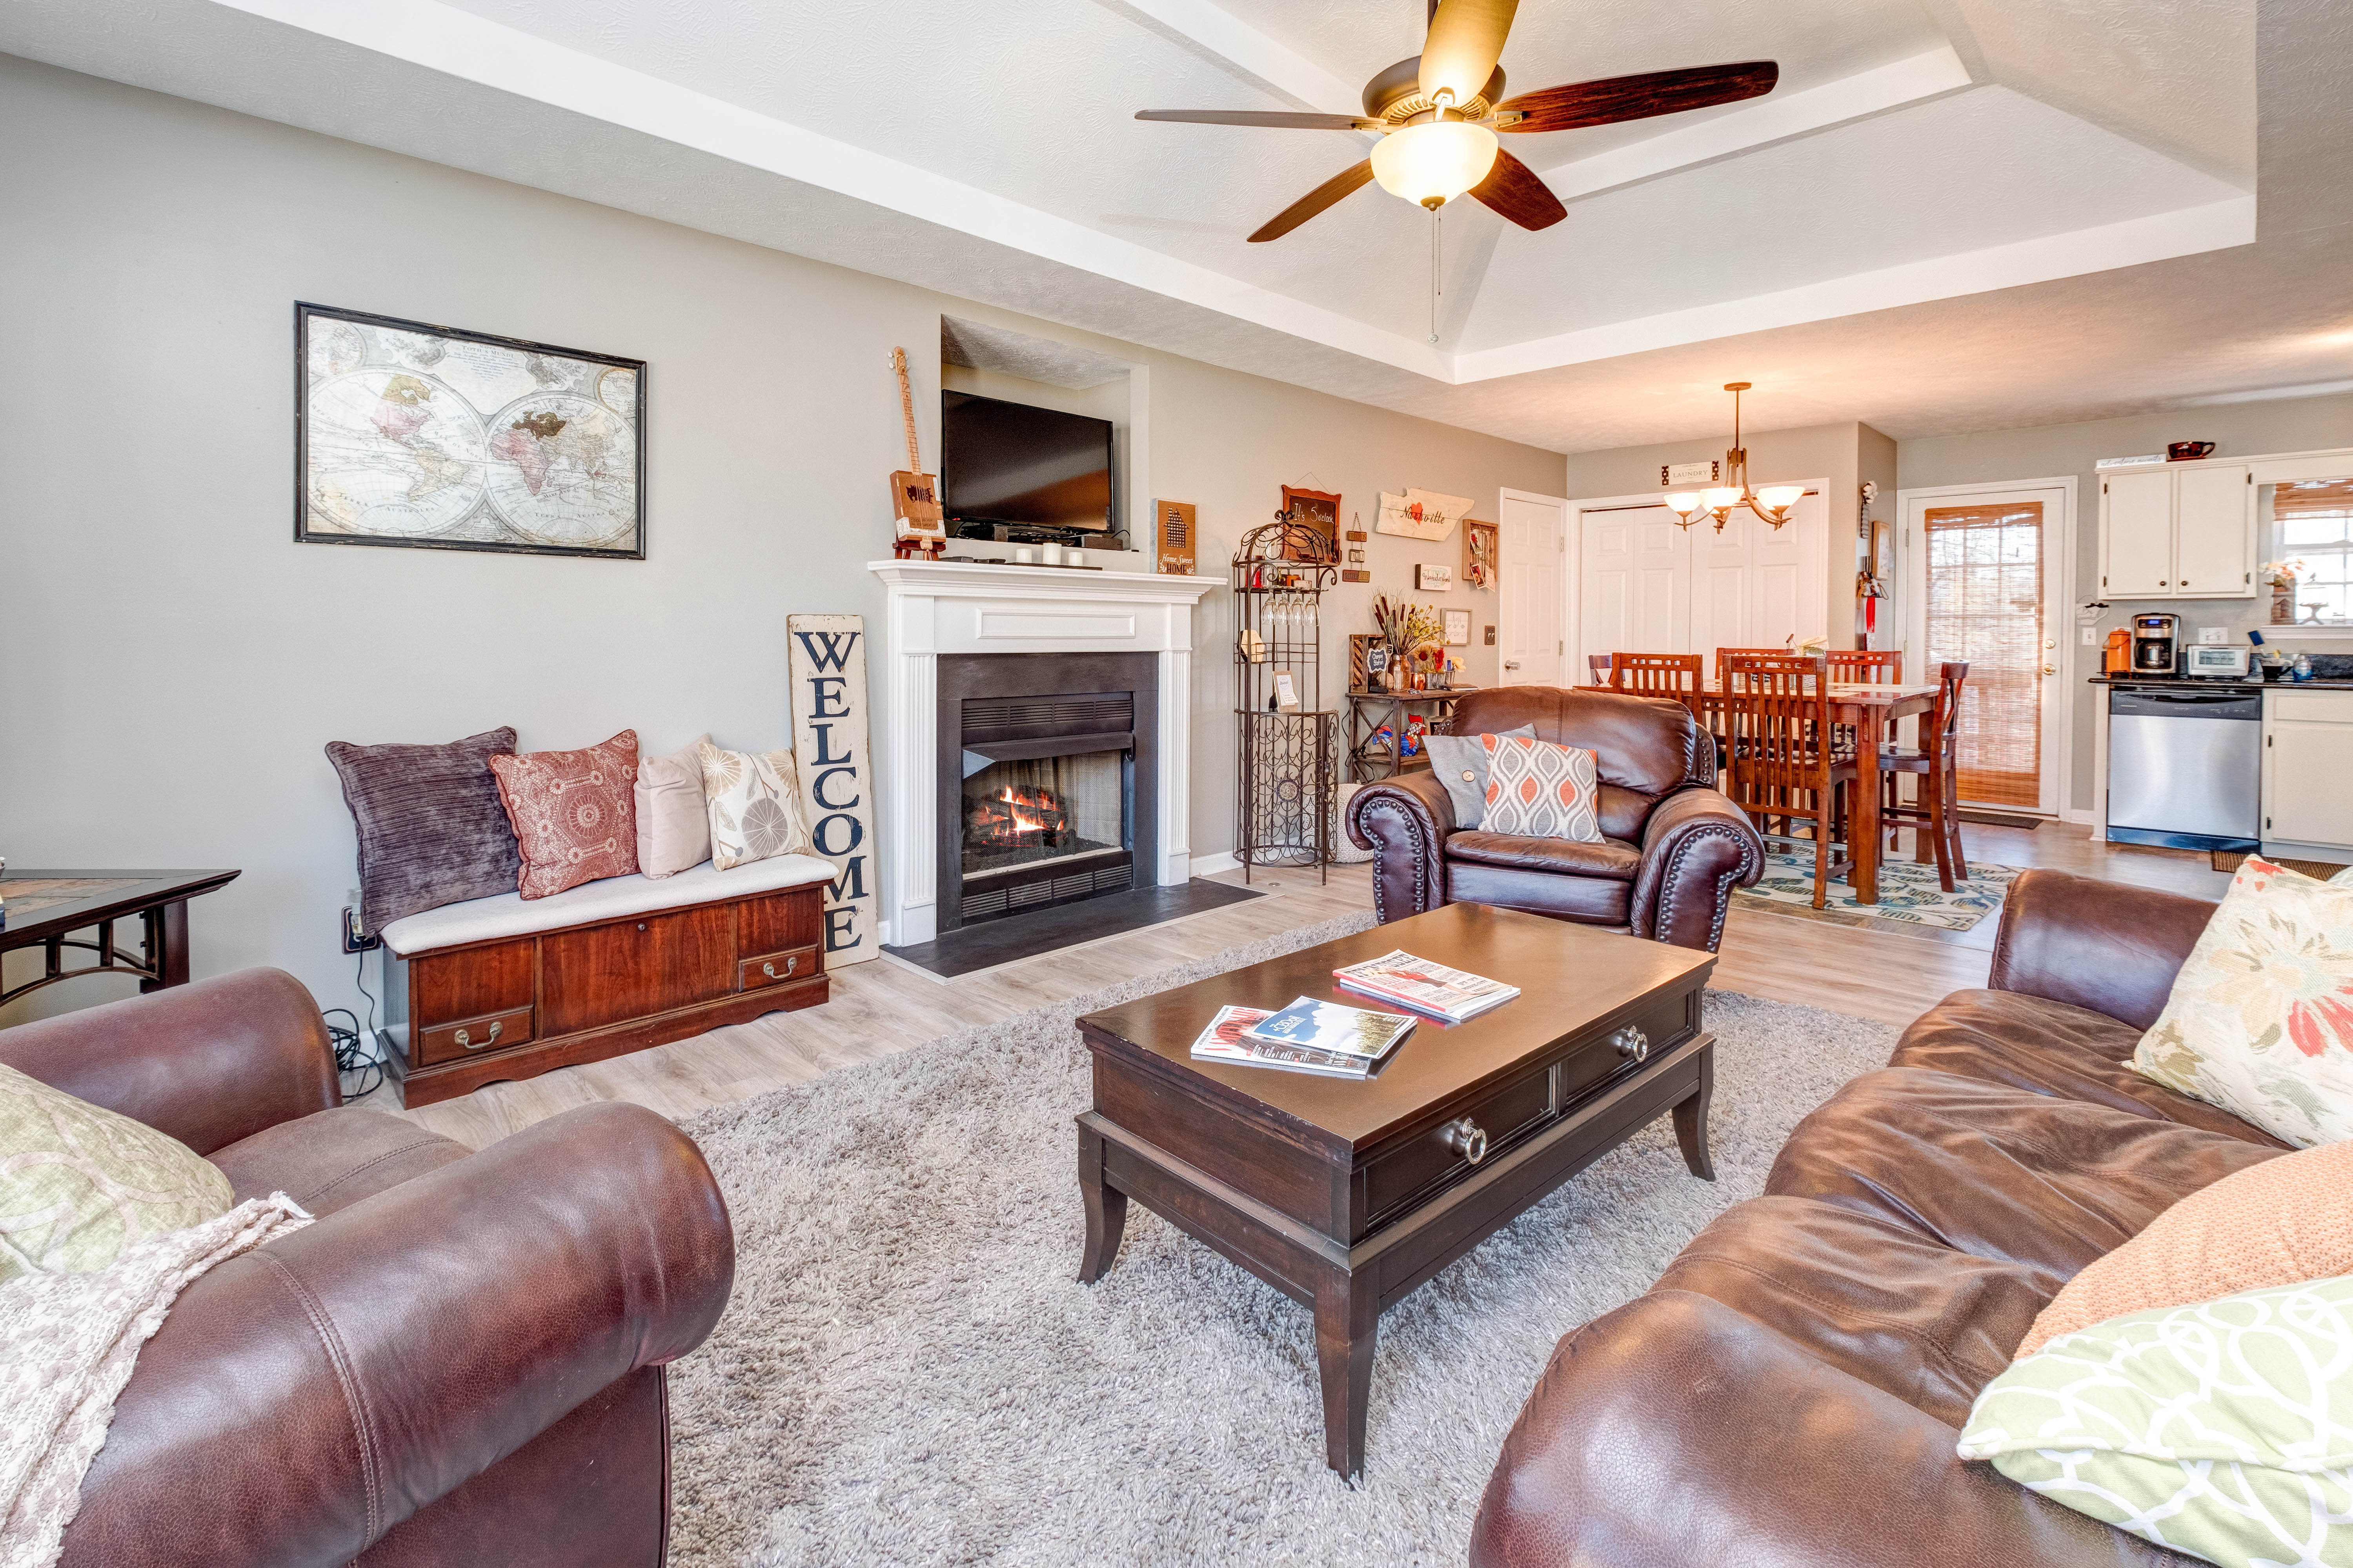 Mt. Juliet TN Vacation Rental Welcome to your